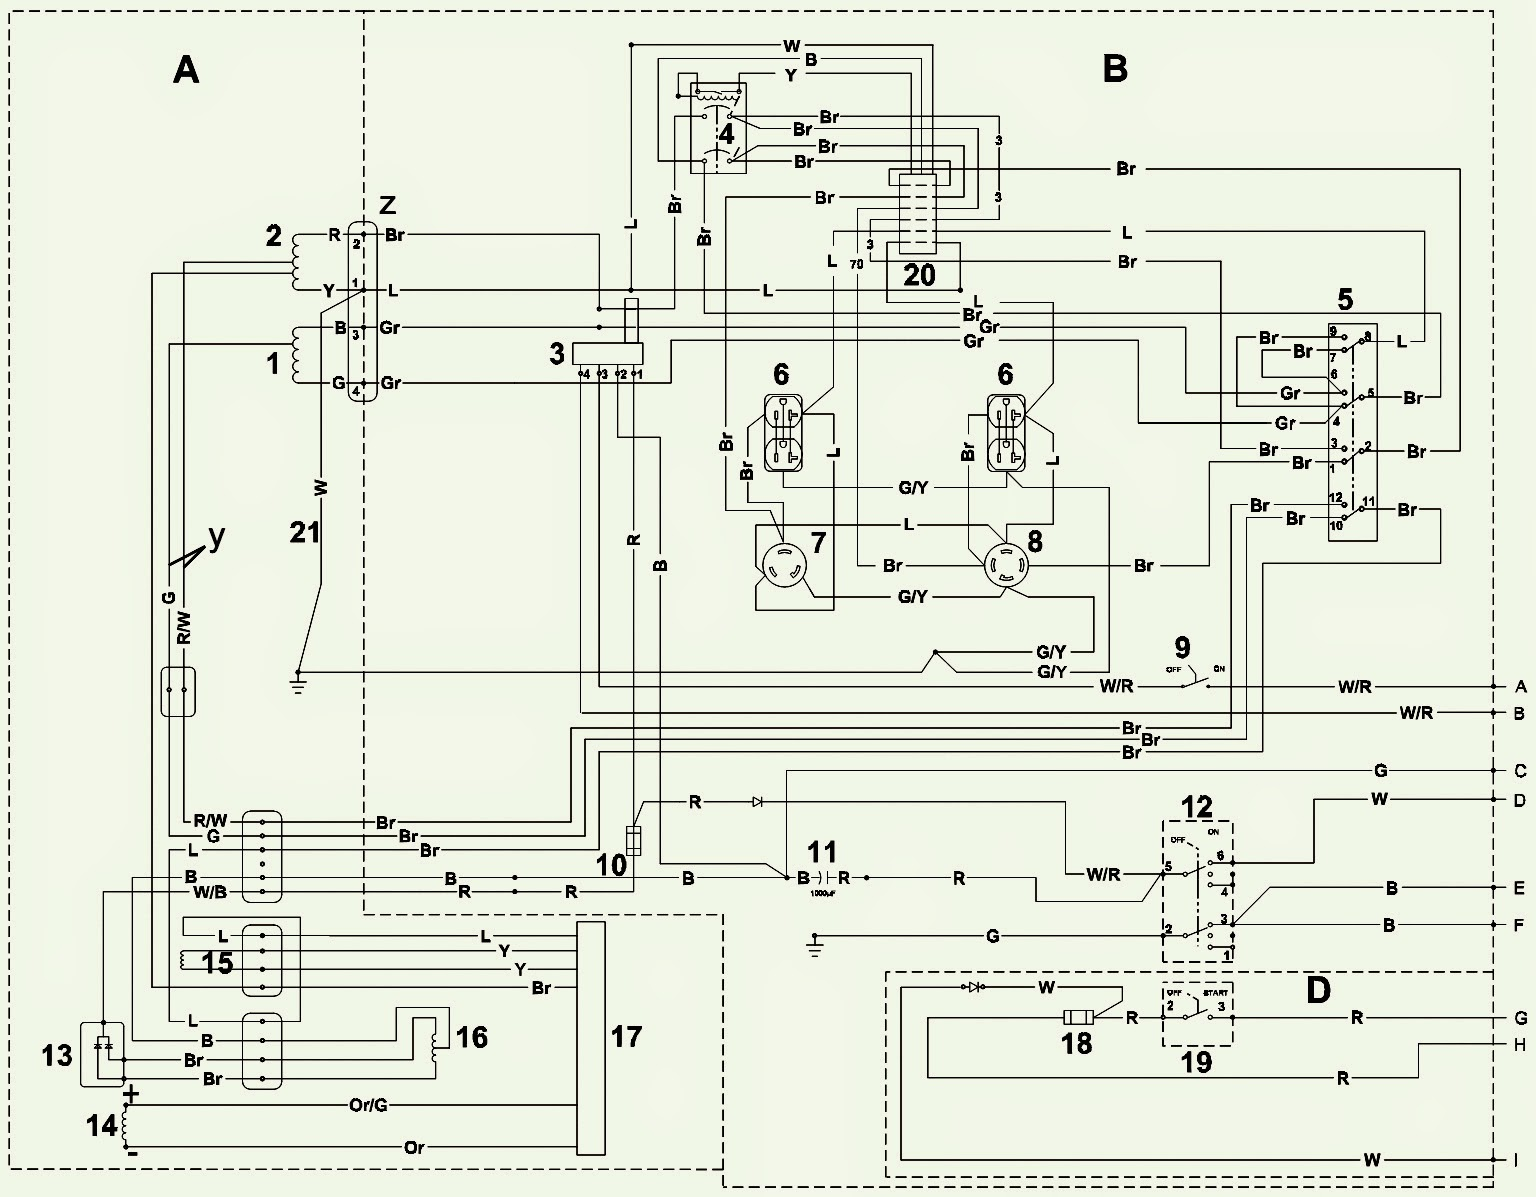 hight resolution of for troubleshooting a malfunctioning anti after fire schema you ll need to rule